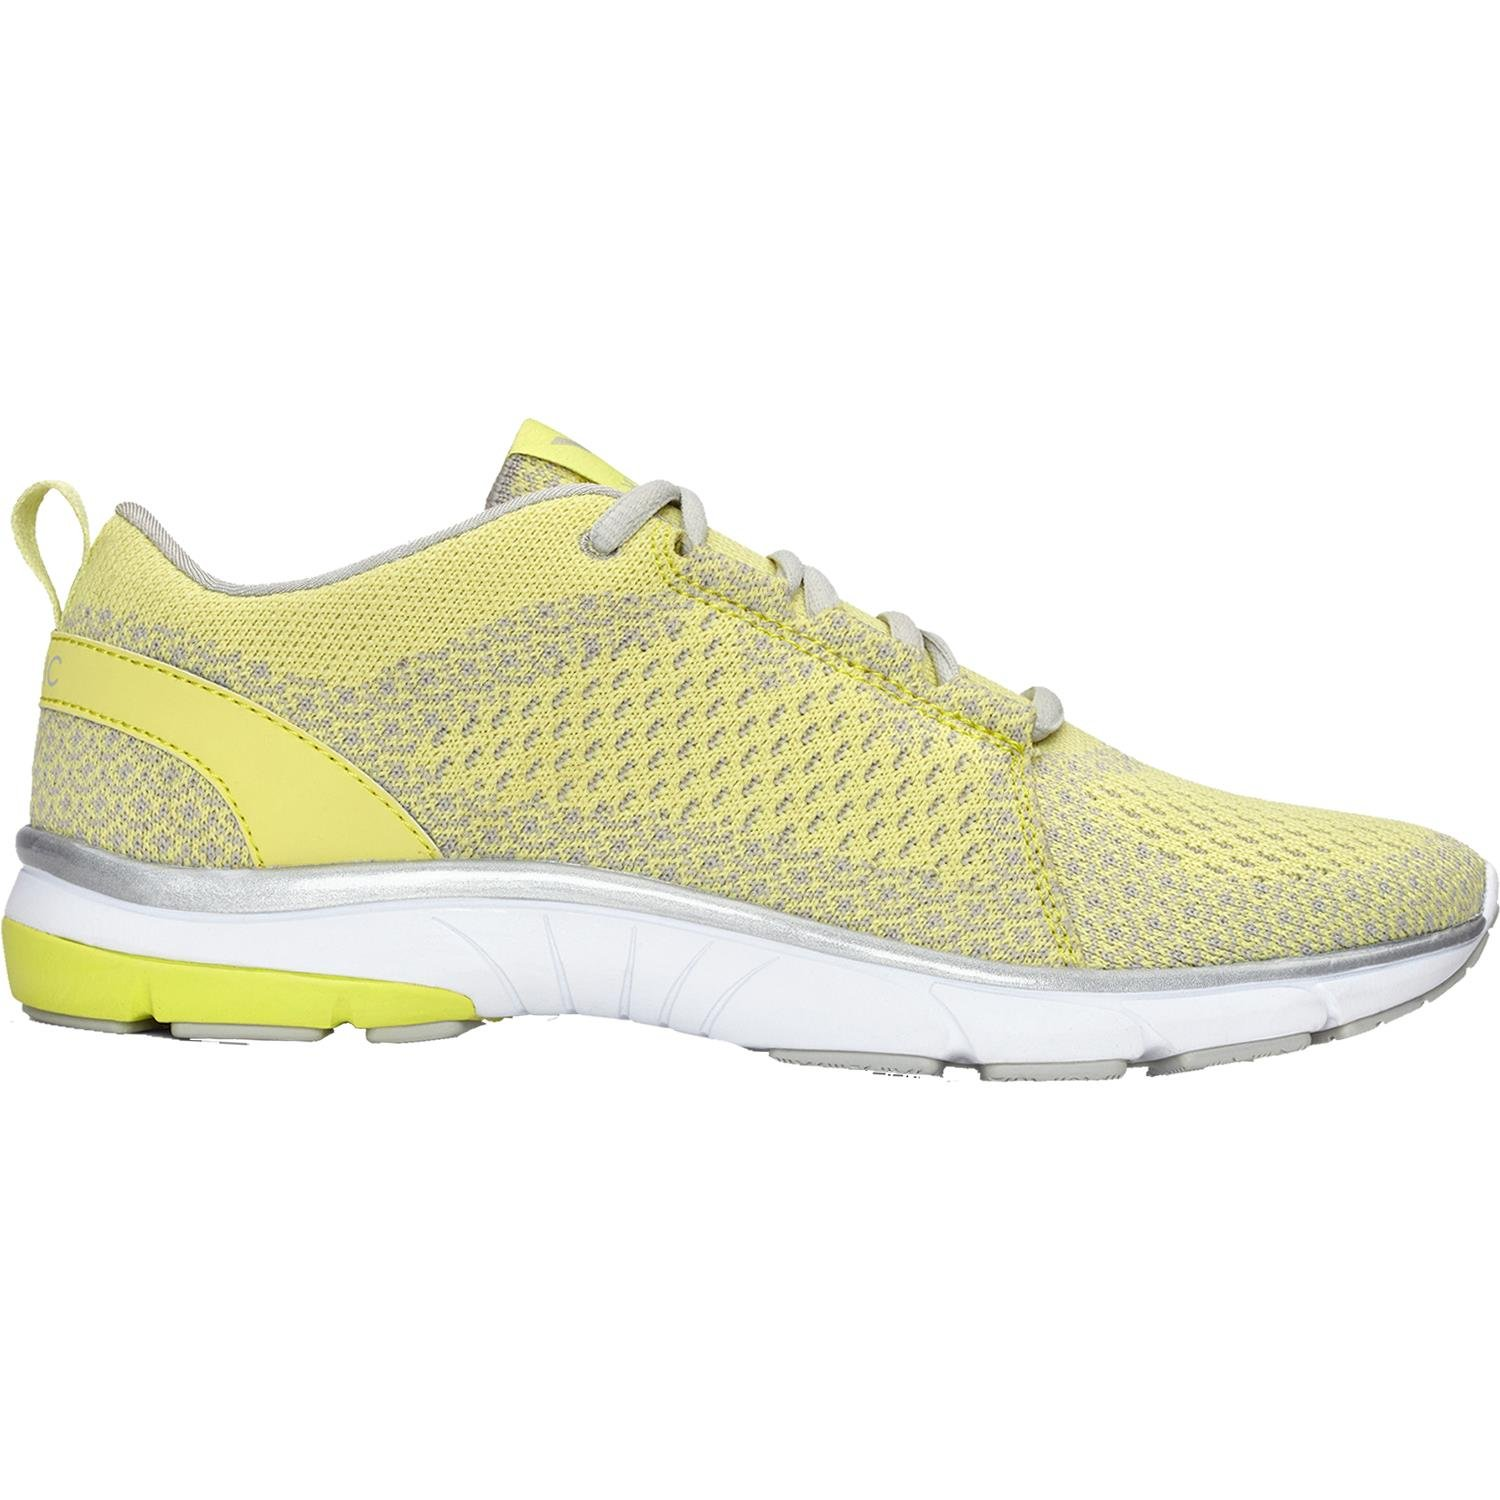 Vionic Womens Flex Sierra Lace Up Sneaker Yellow Size 9 Wide